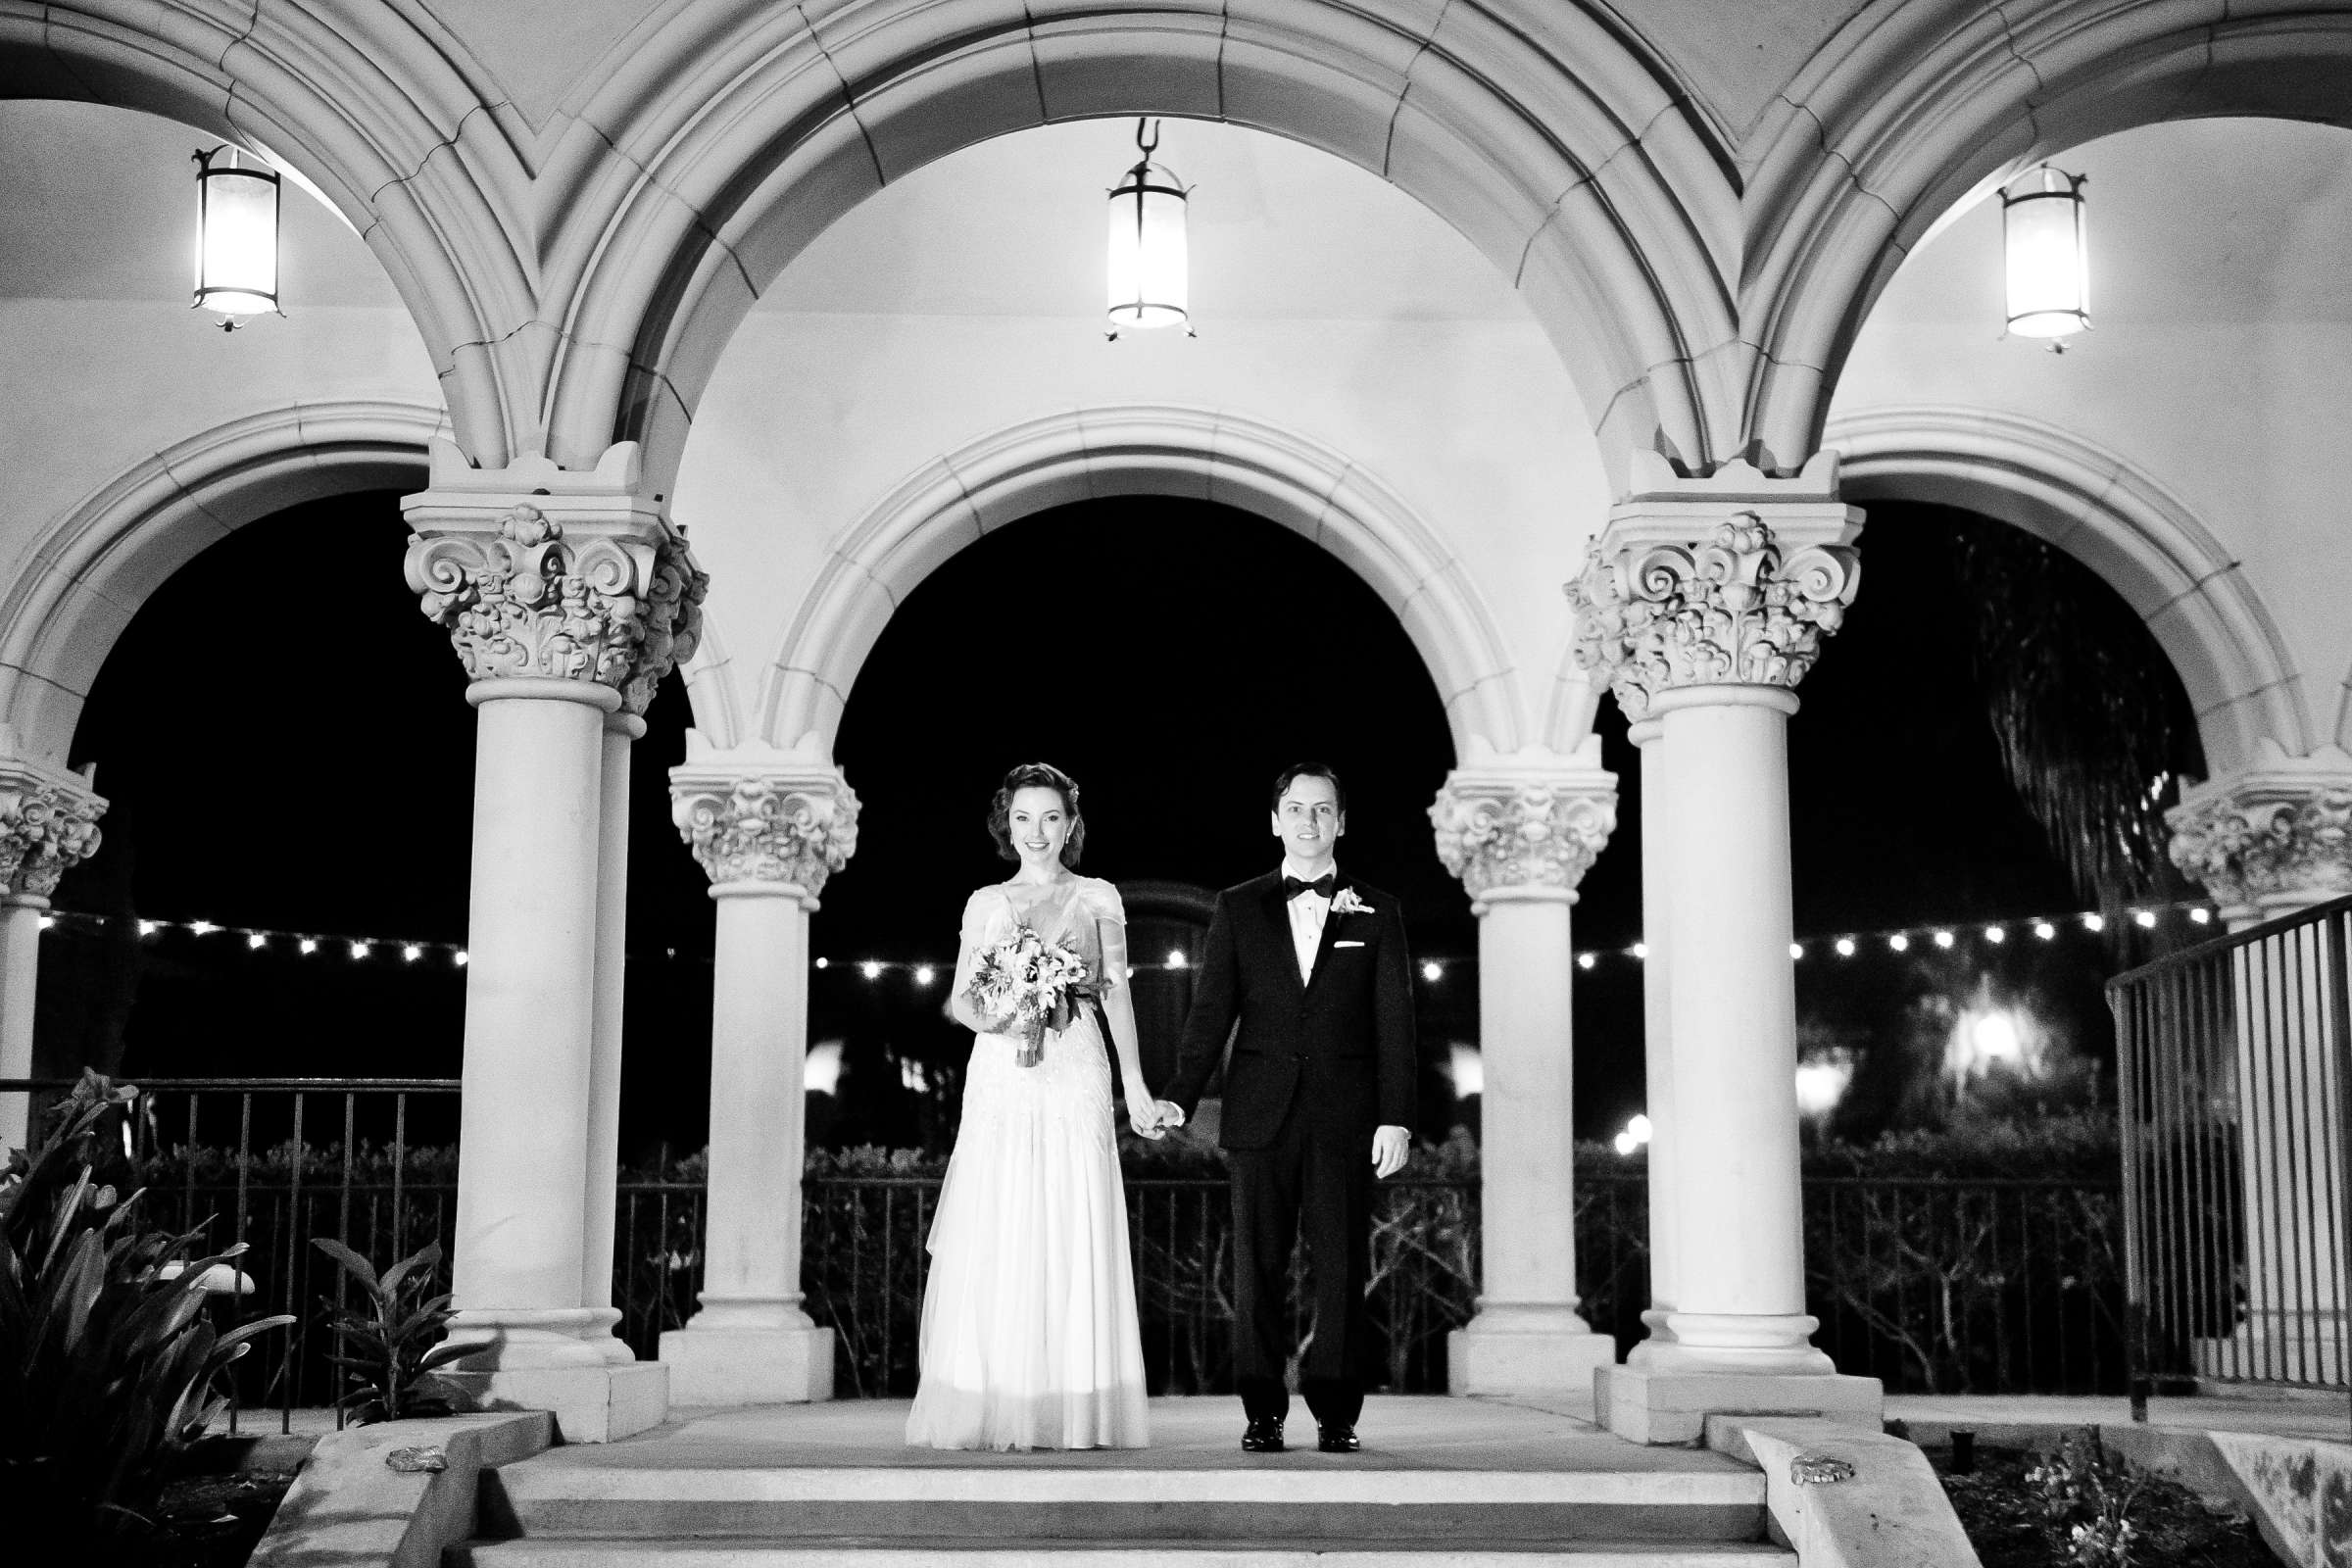 The Prado Wedding coordinated by Francine Ribeau Events, Rosalyn and Adam Wedding Photo #6 by True Photography